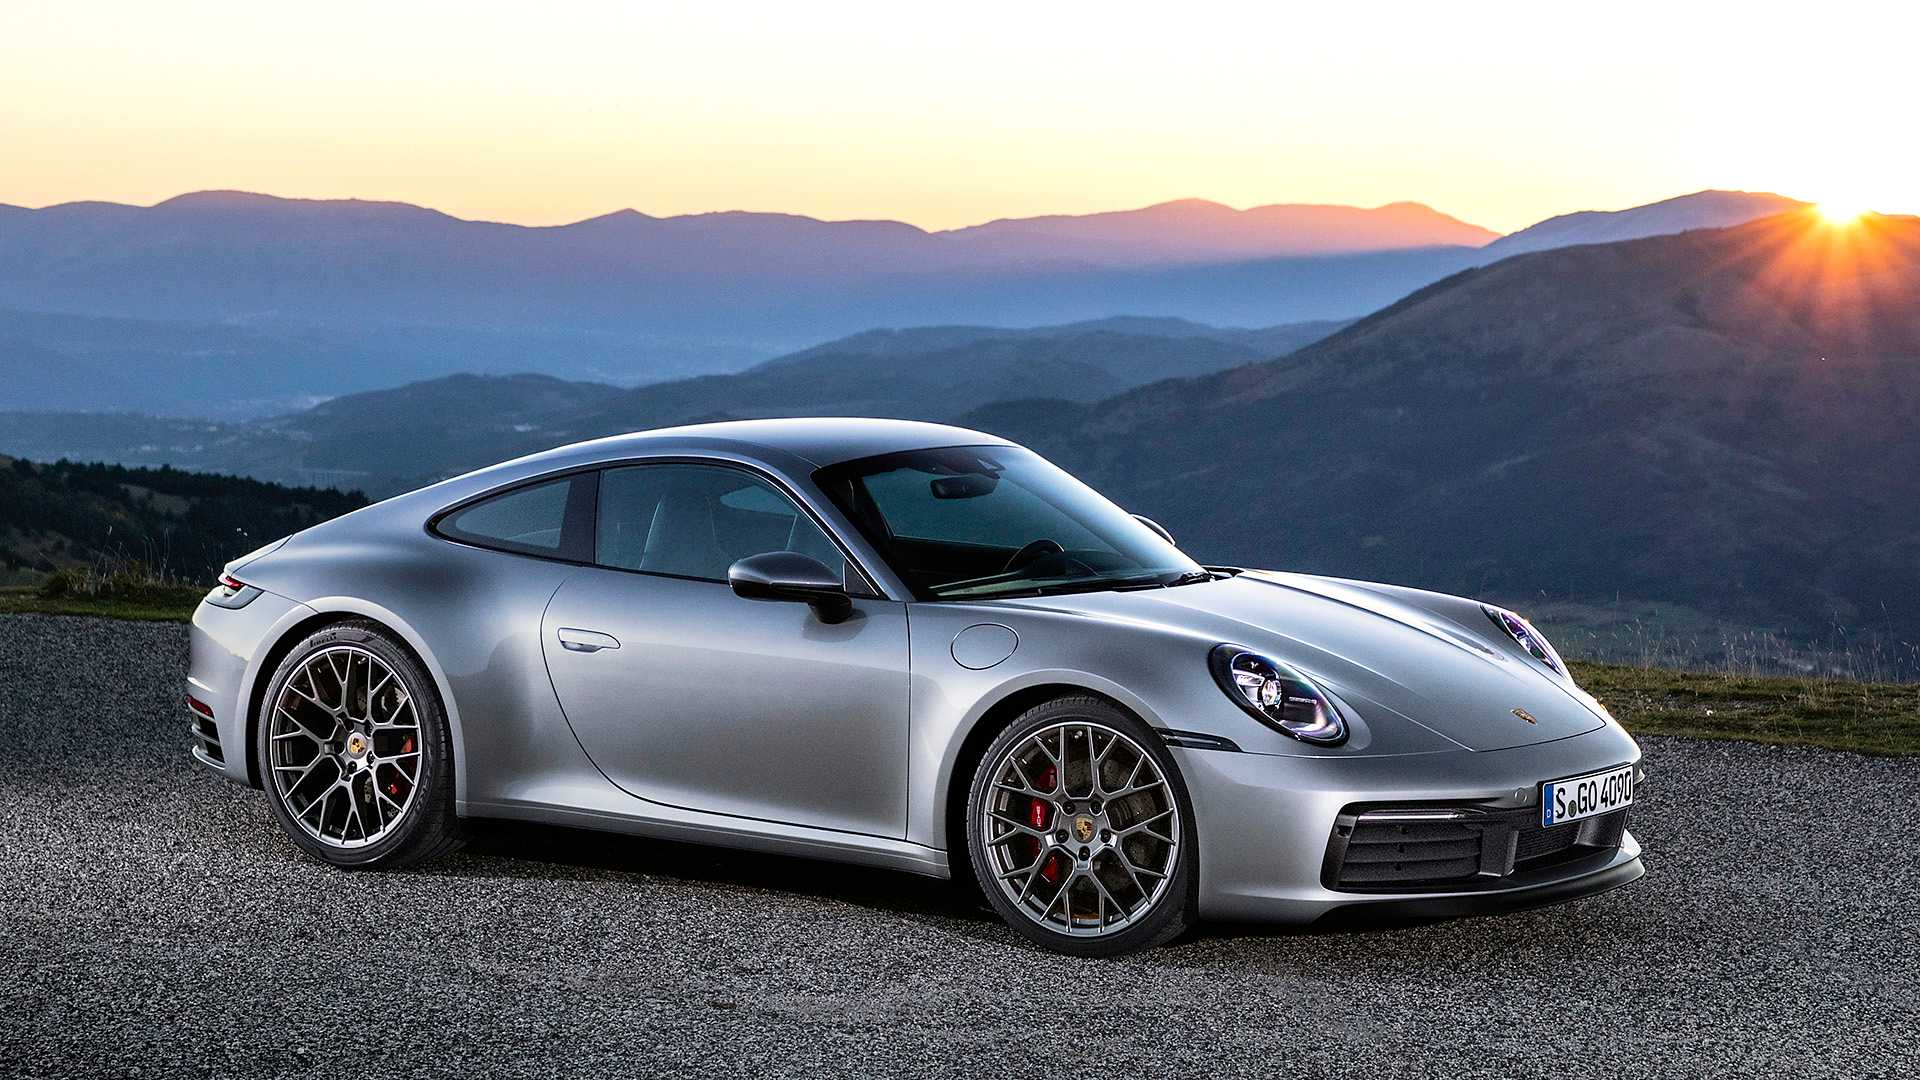 78 All New 2020 Porsche 992 Images